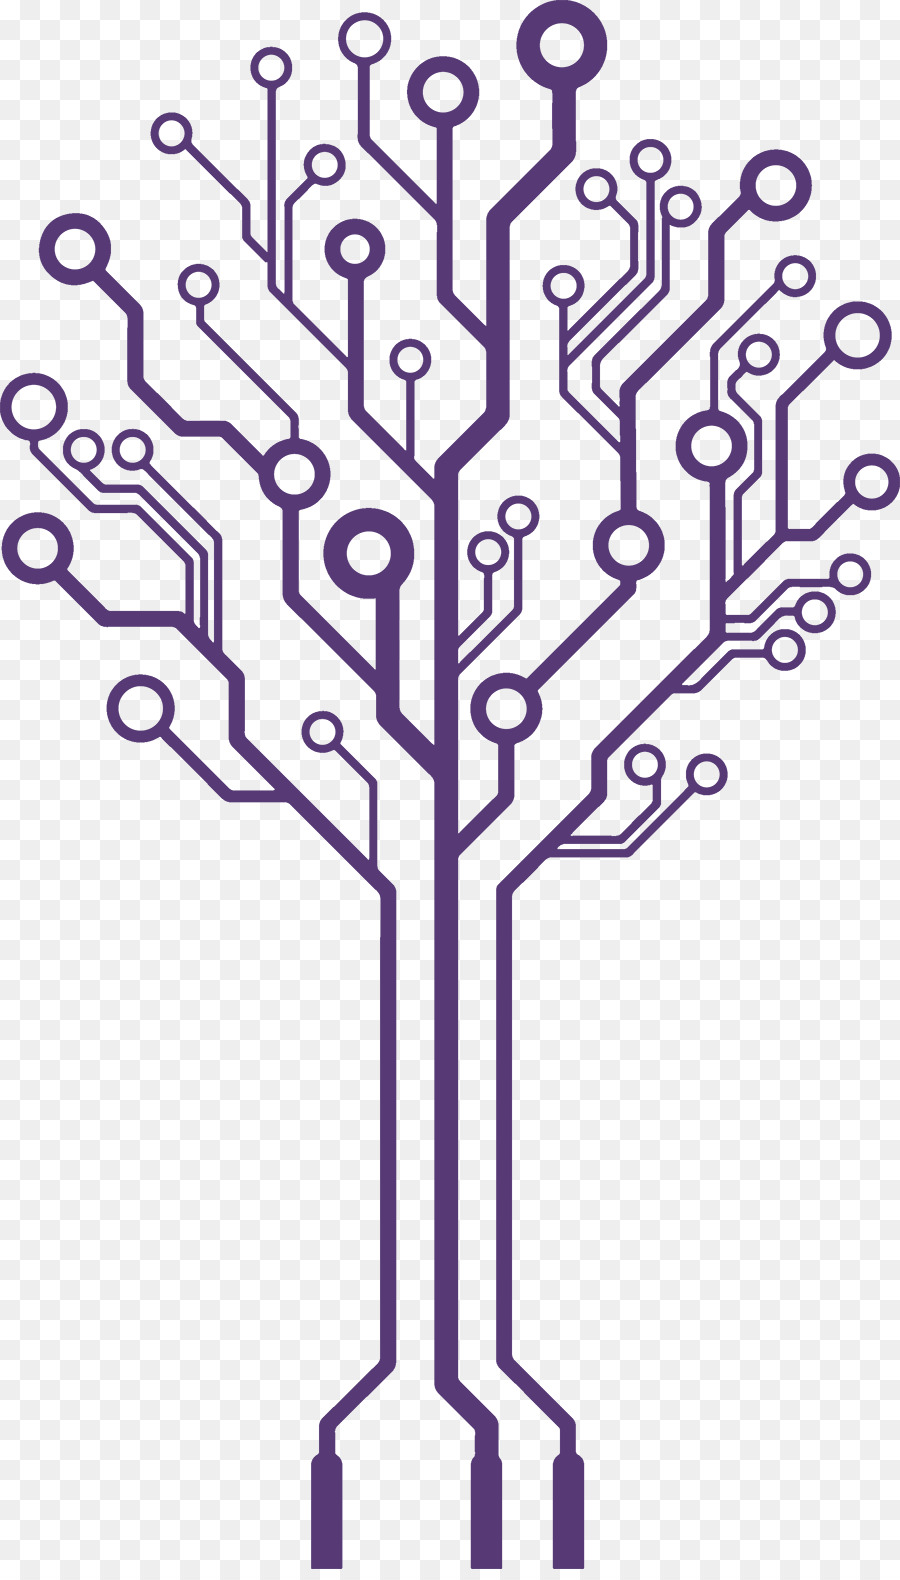 hight resolution of vector graphics printed circuit boards stock photography electronic circuit illustration circuit line